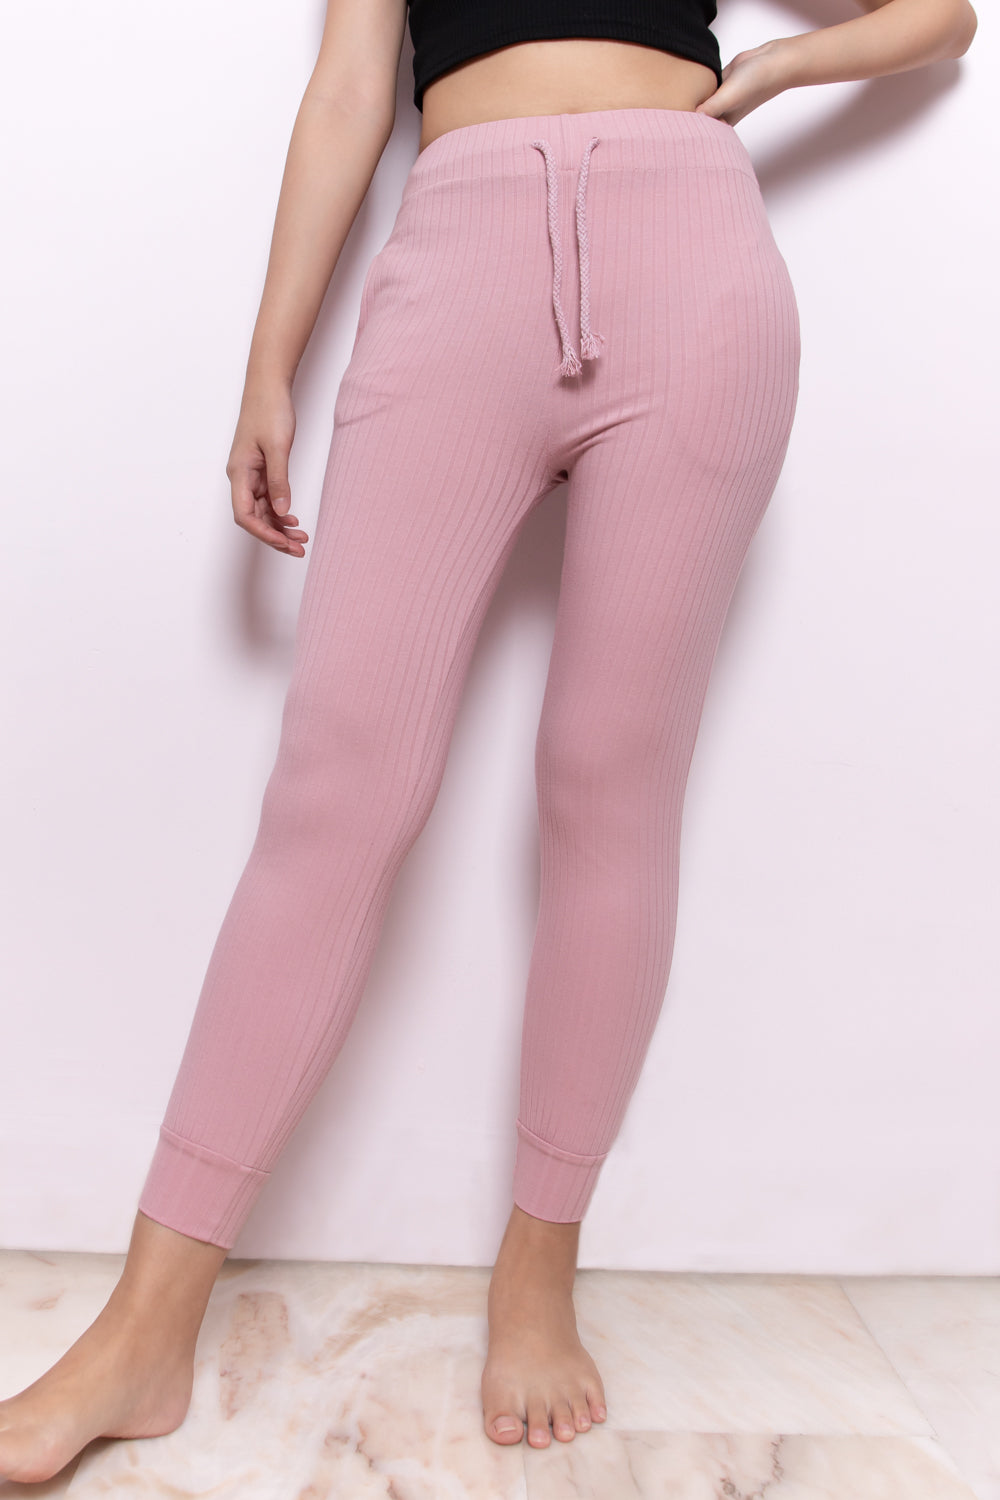 Claire Essential Ribbed Cuffed Hem Joggers in Pink - Three One Duo